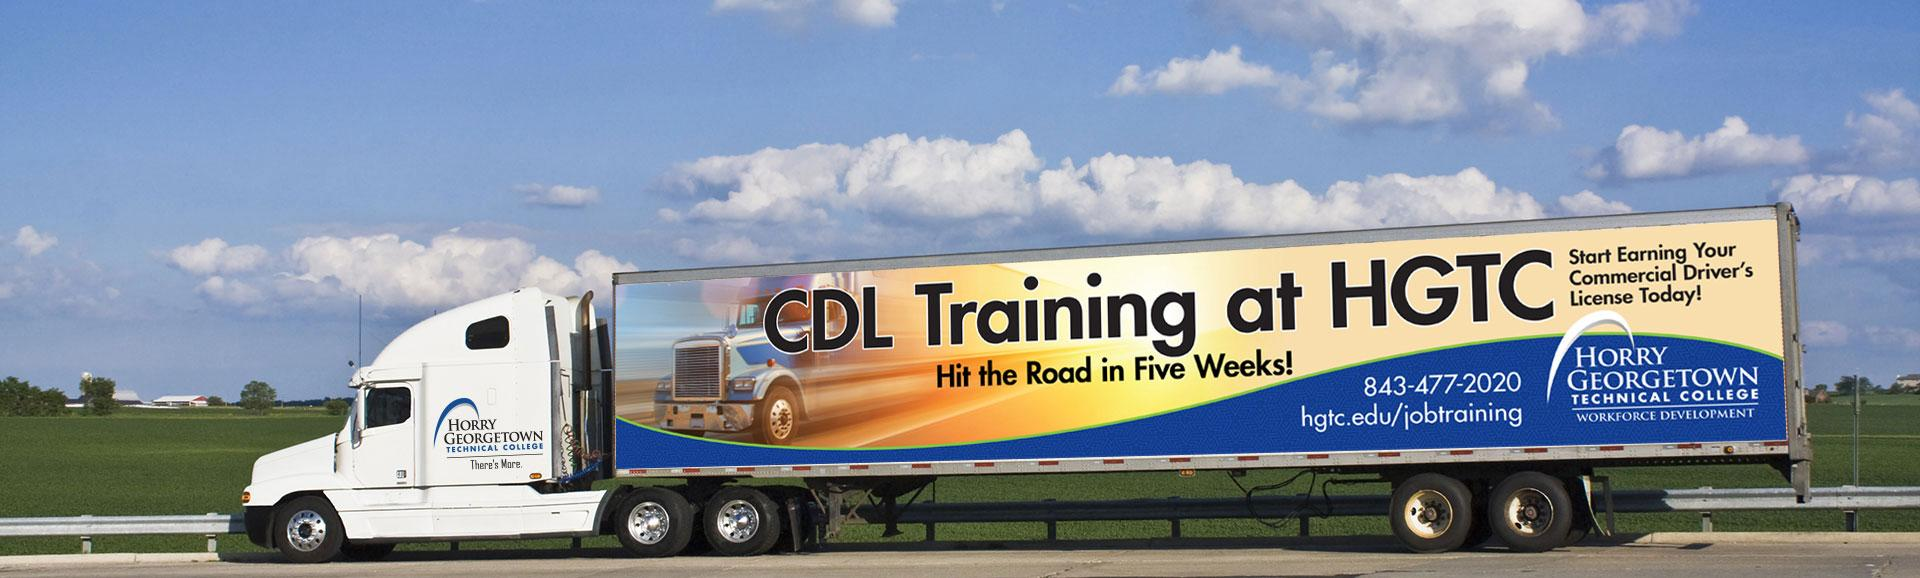 Are you interested in the trucking industry and want your CDL?  Get trained in just 5 weeks!